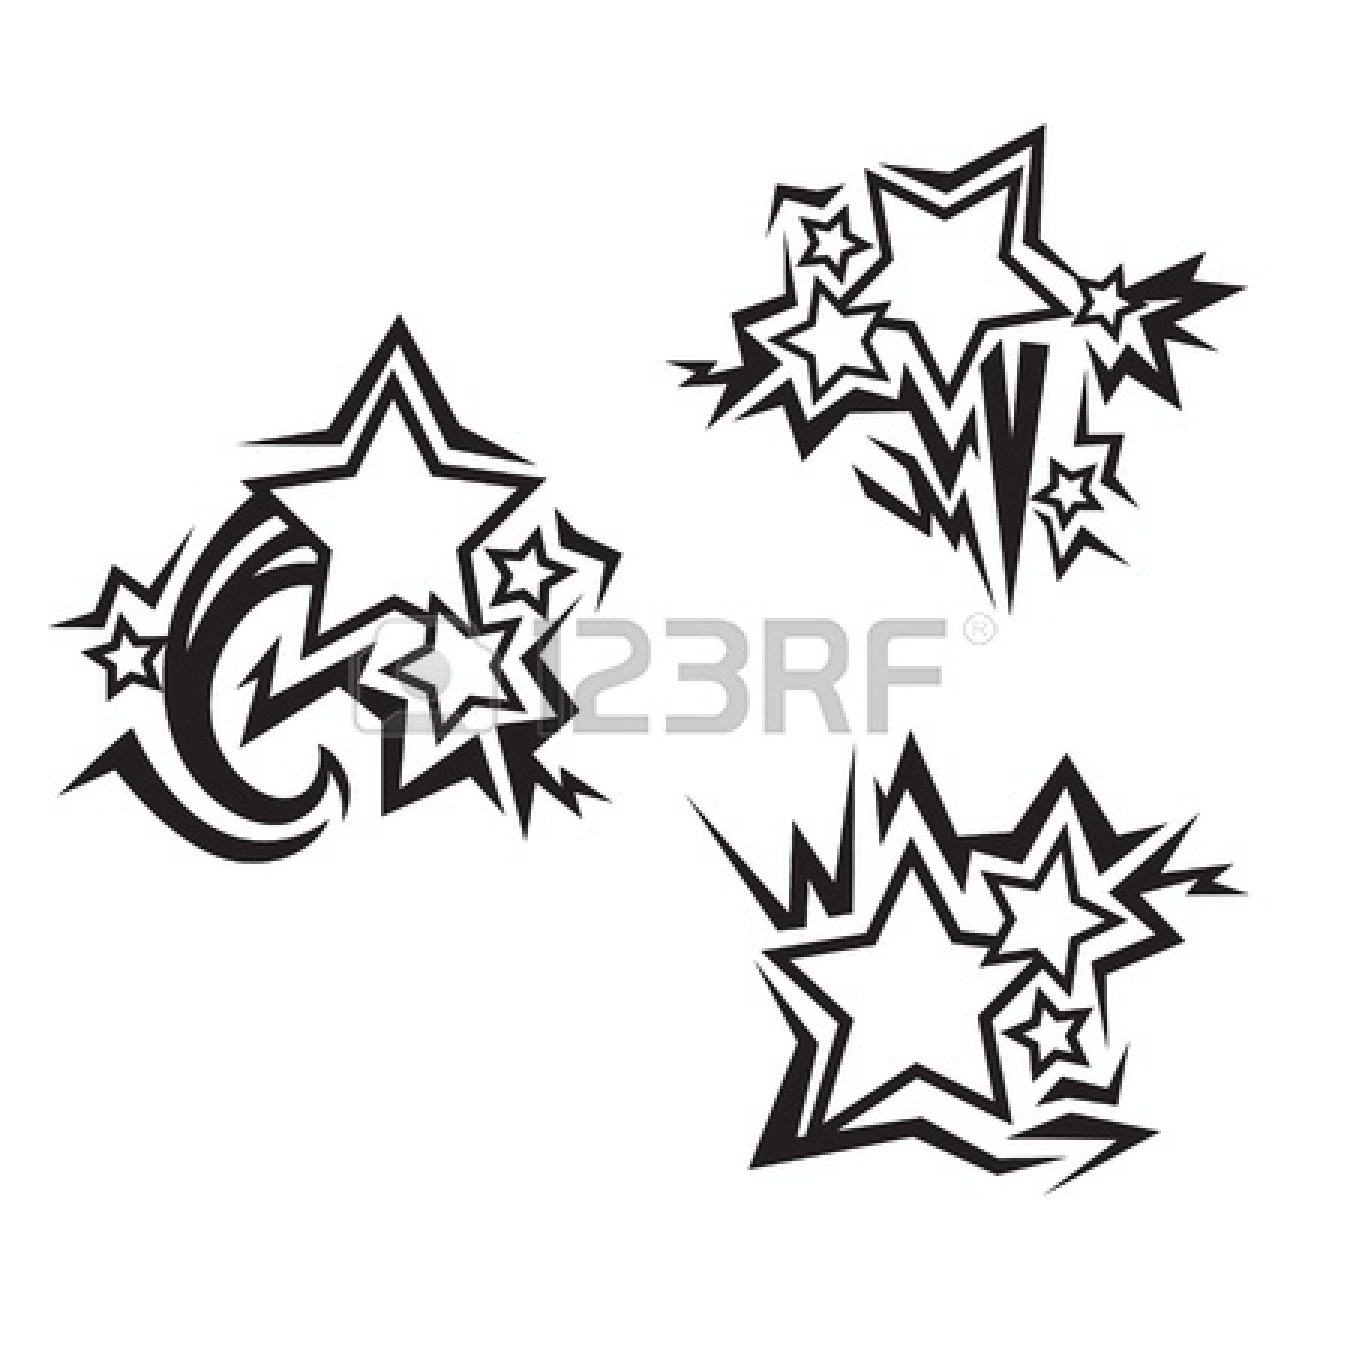 1350x1350 Graffiti Star Drawing How To Draw An Impossible Star